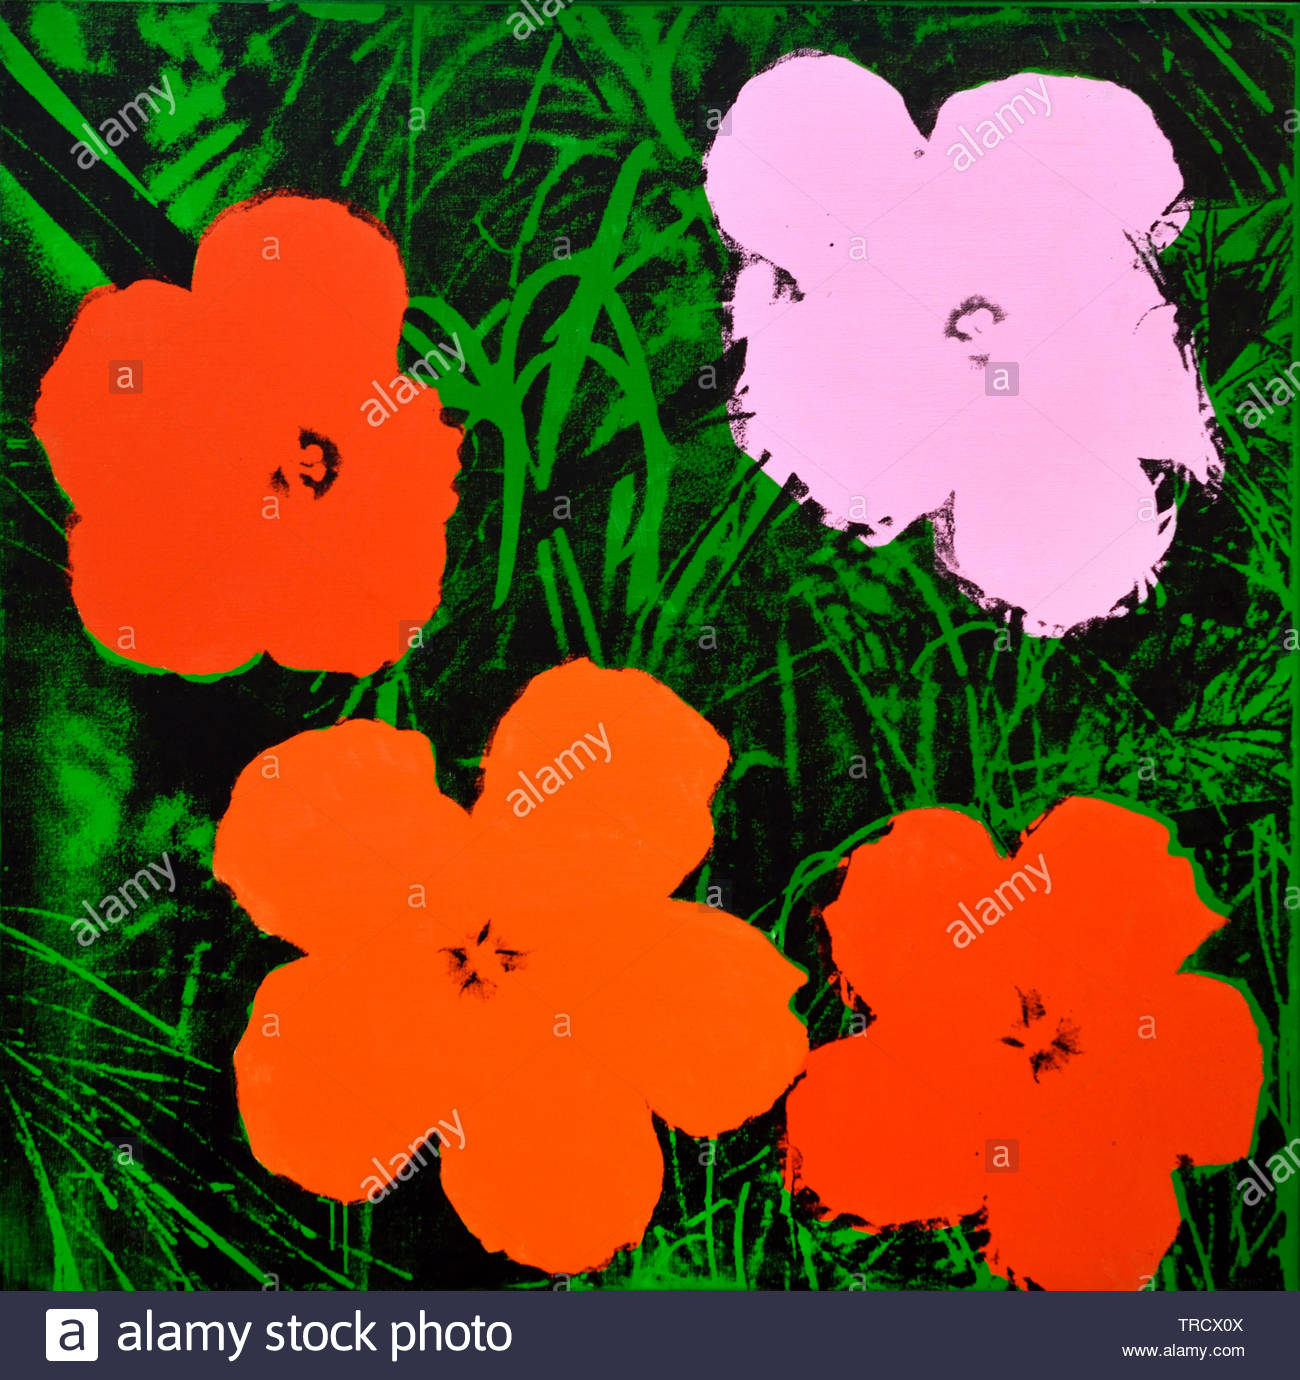 Flowers by Andy Warhol 1928 United States of America USA ( American artist, director and producer who was a leading figure in the visual art movement known as pop art. ) - Stock Image